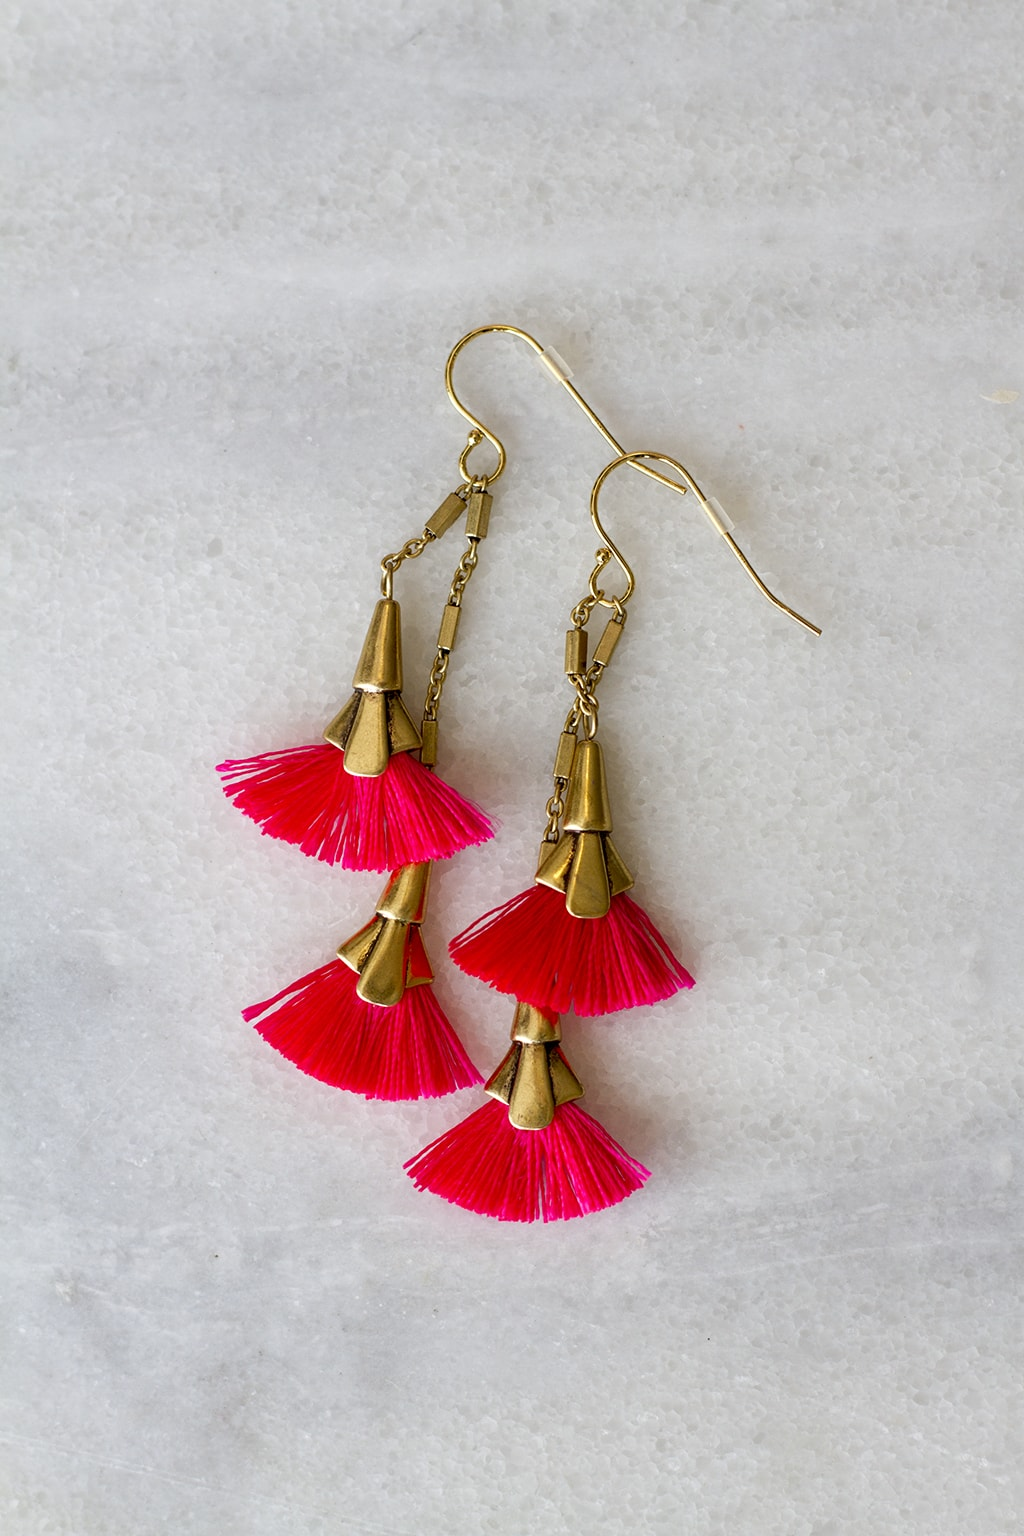 Stella & Dot Accessories Tassel Earrings